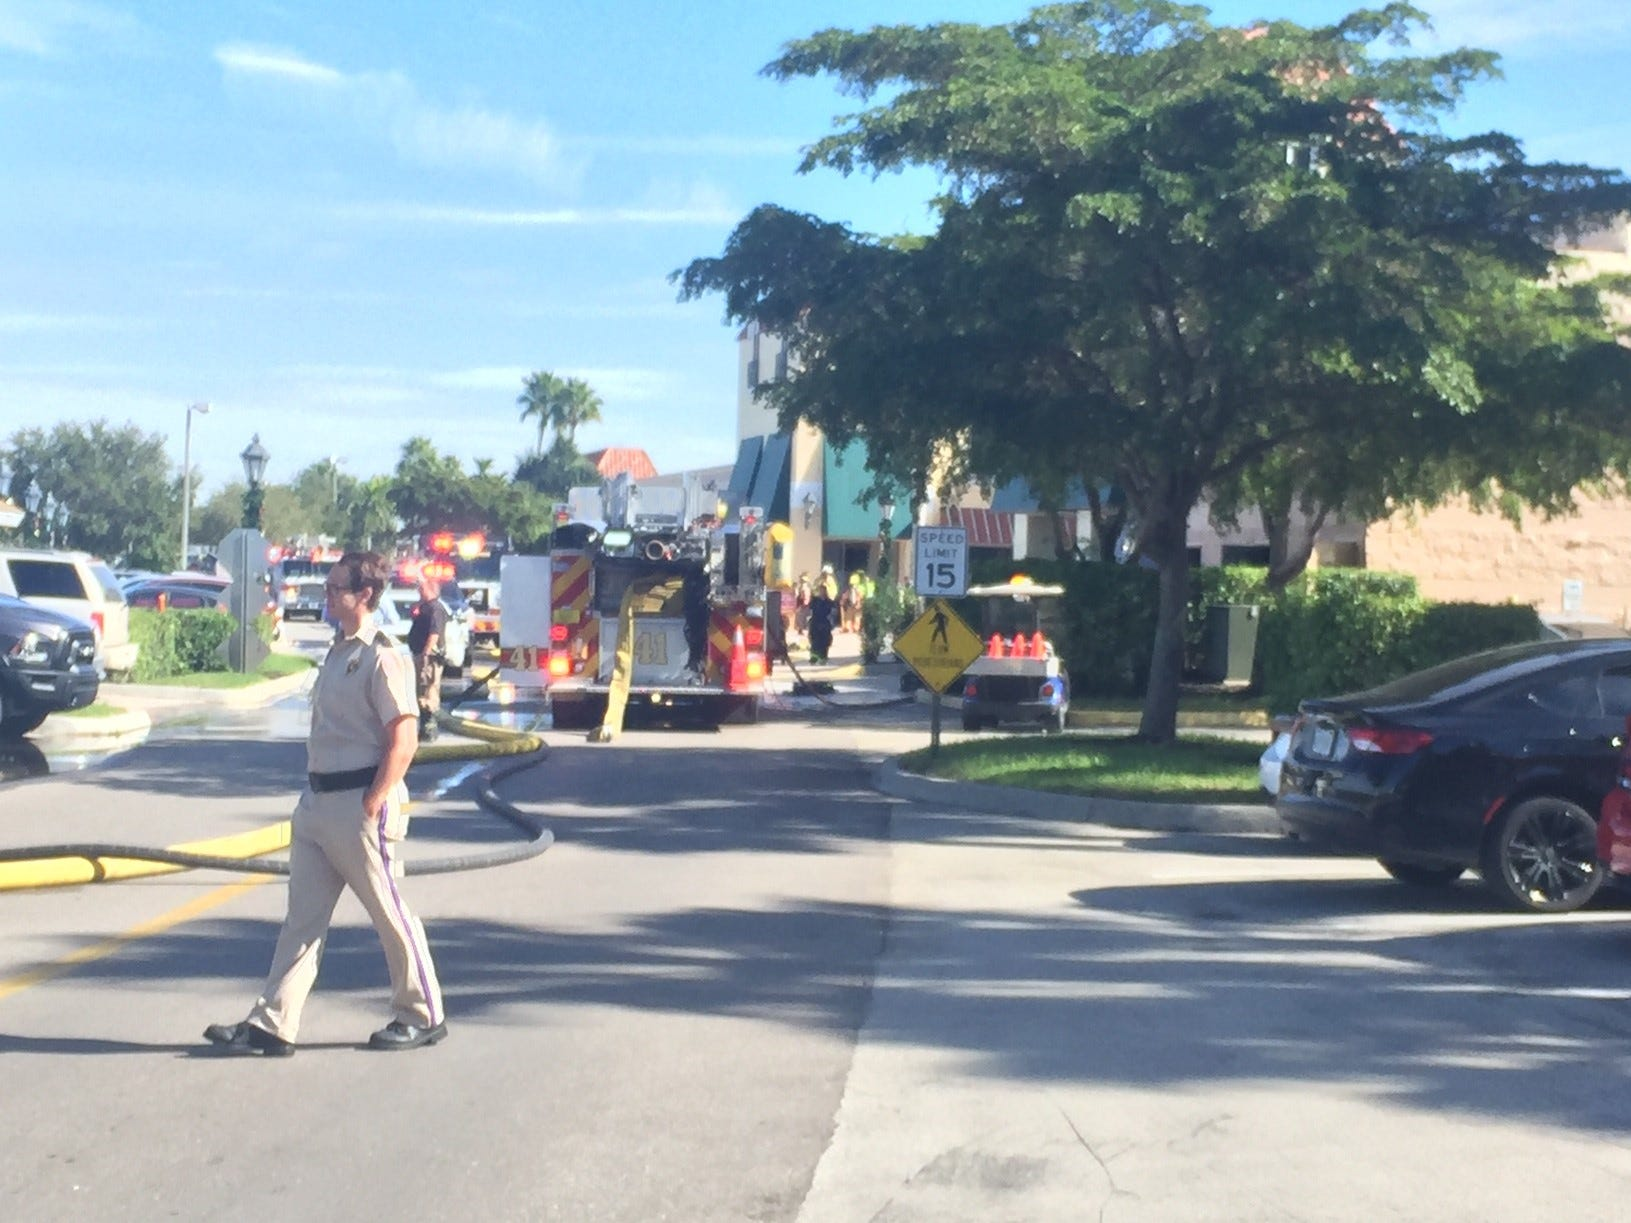 A fire was reported at the Michael Kors store in  Miromar Outlets on Thursday morning, Nov. 29, 2018.